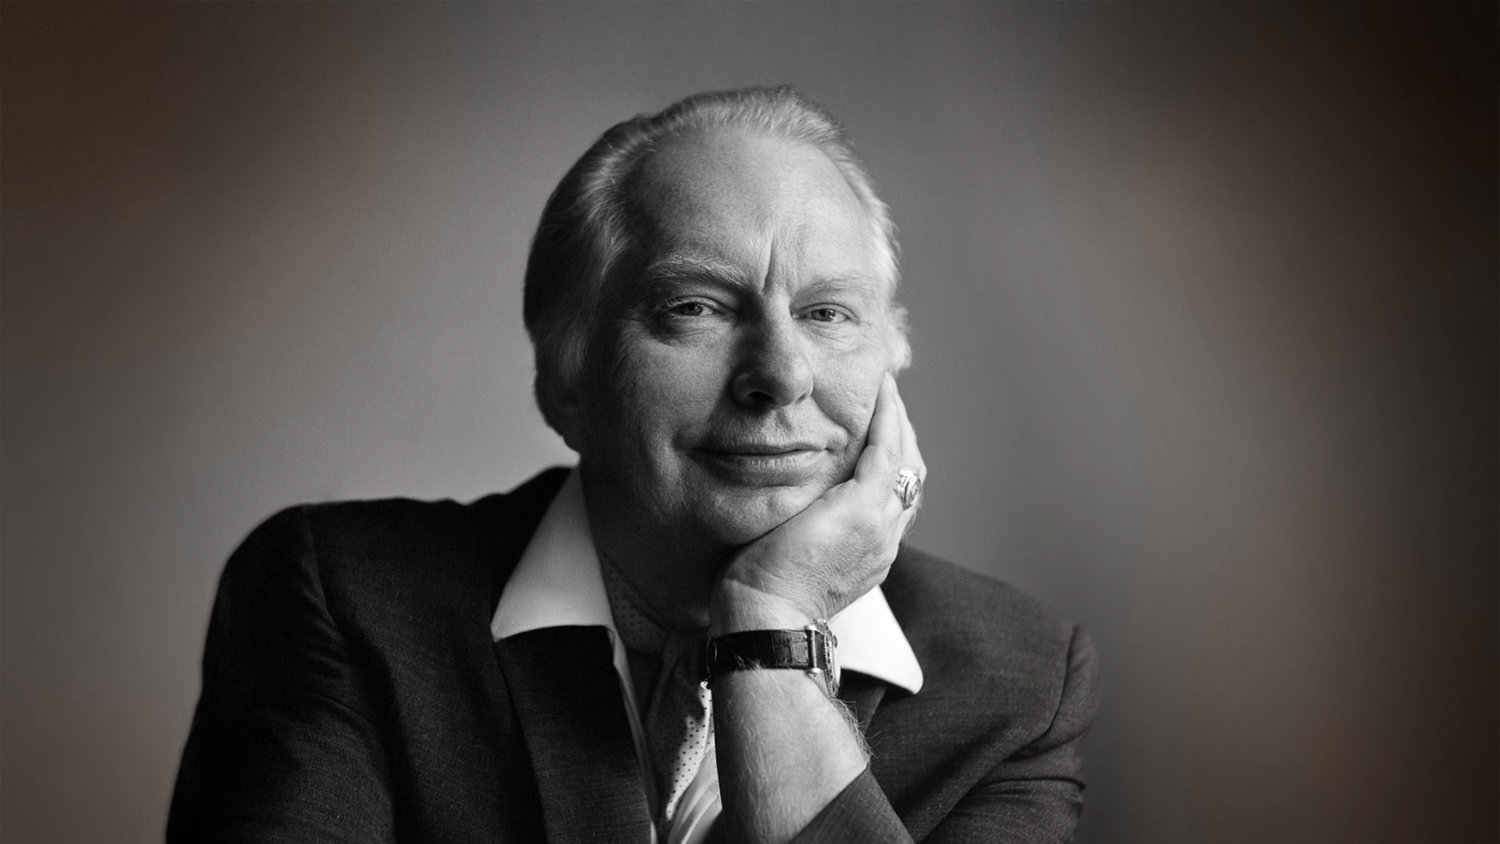 L. Ron Hubbard - Founder of Dianetics and Scientology